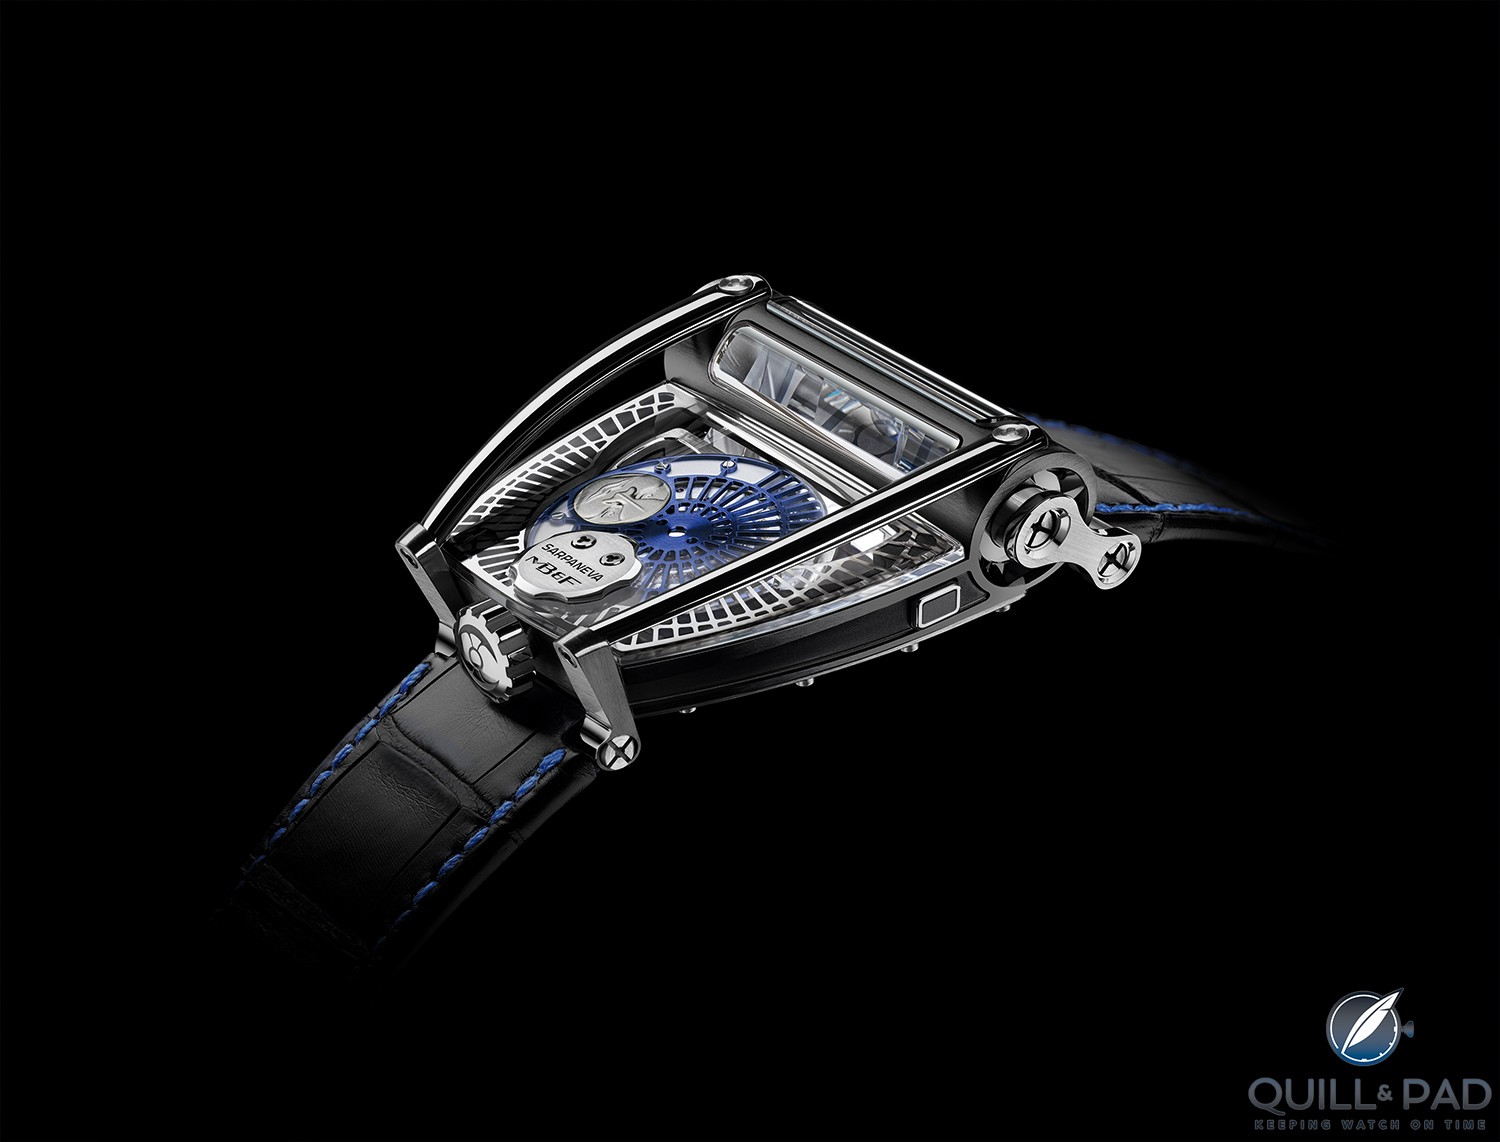 MoonMachine 2 in titanium by MB&F with Stepan Sarpaneva